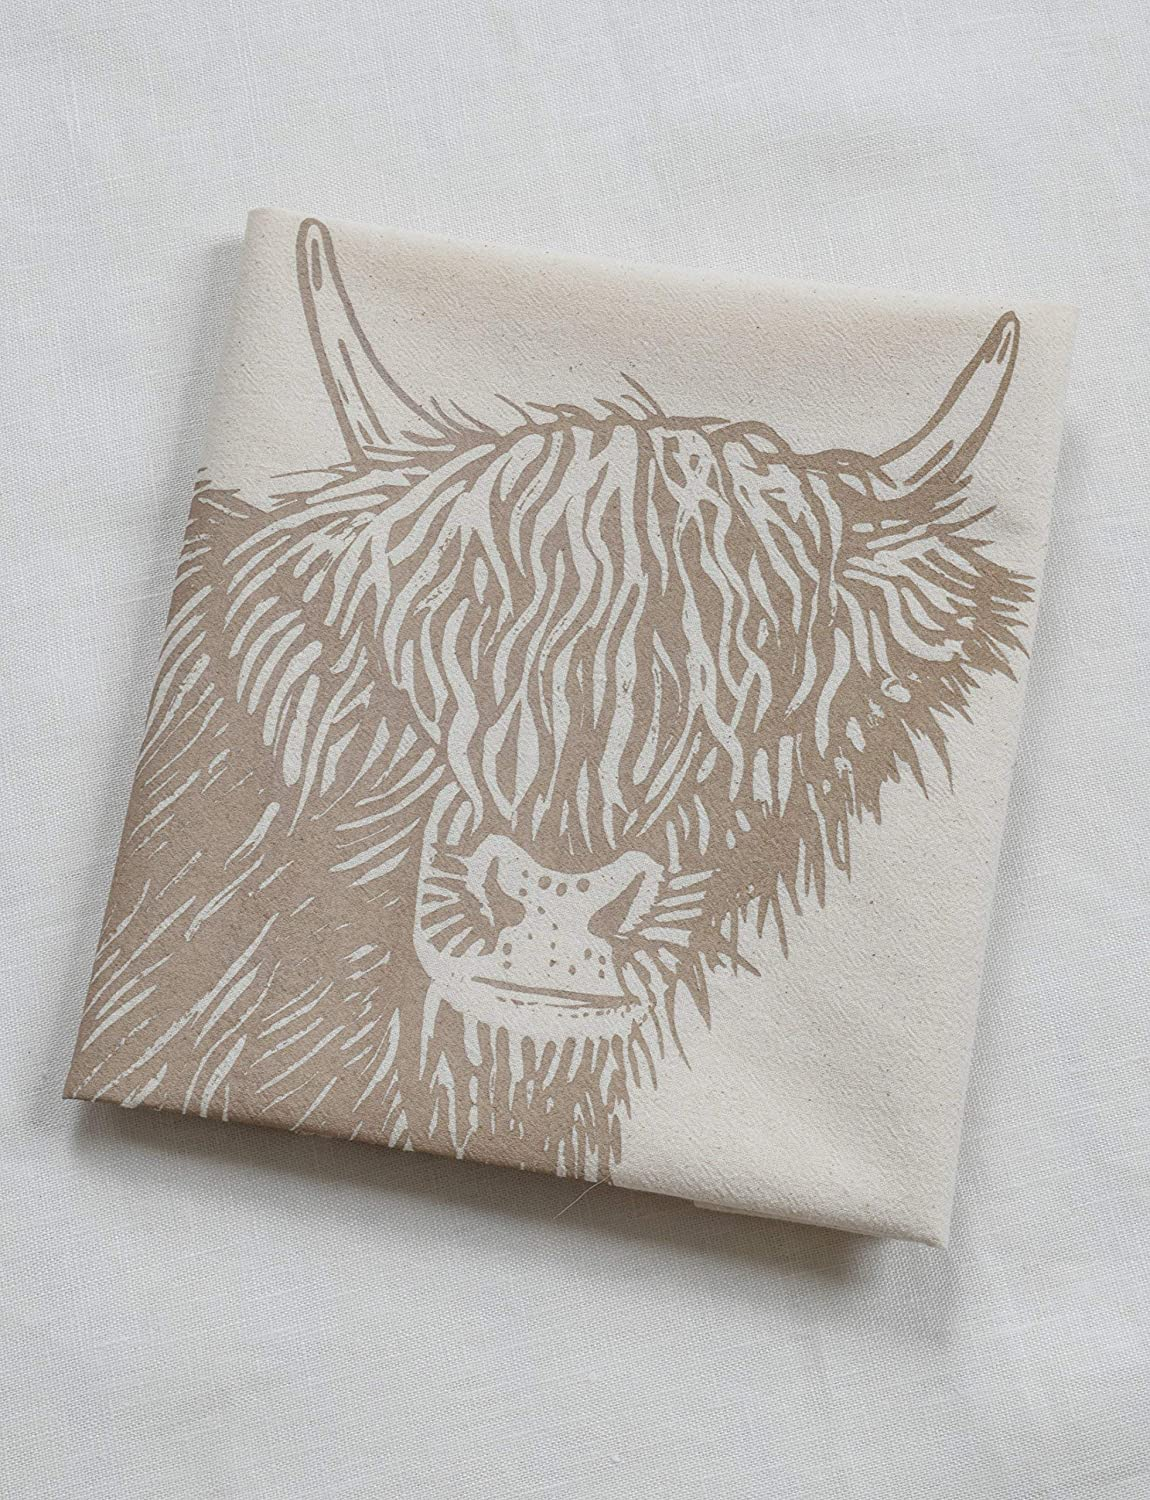 Cow Tea Towel - Organic Flour Sack Cotton - Scottish Highland Cow - Mocha Brown Print